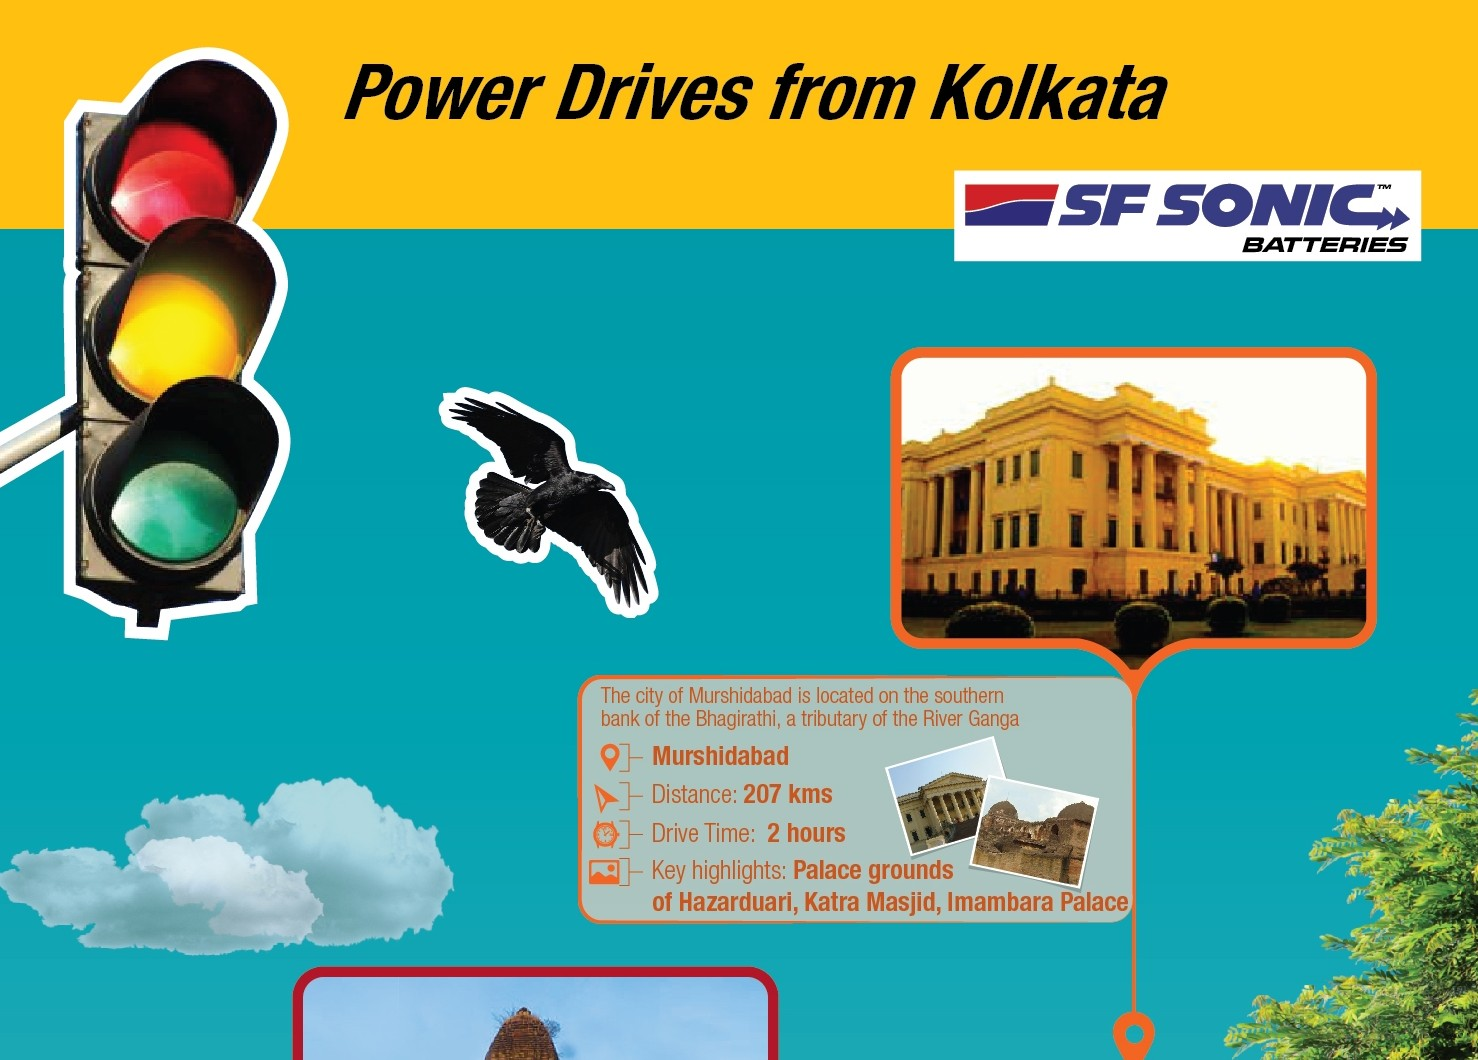 sf_sonic_power_drives_from_kolkatta